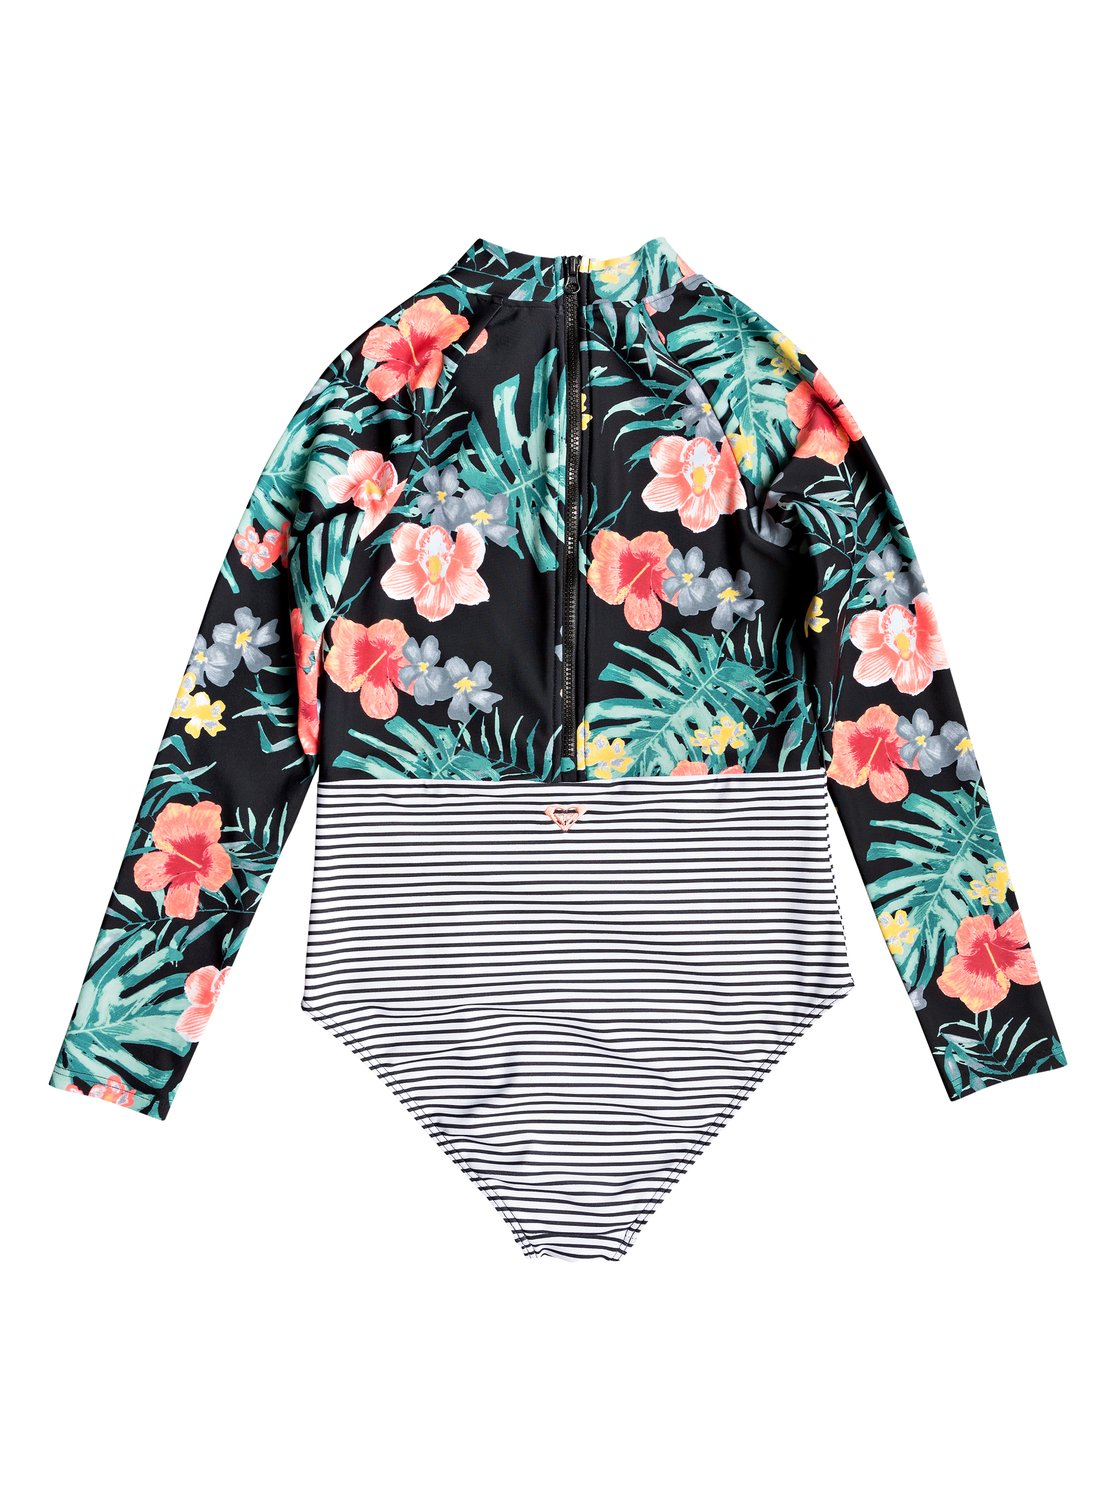 16ff2df255 Happy Spring - Long Sleeve UPF 50 One-Piece Swimsuit for Girls 8-16 ...